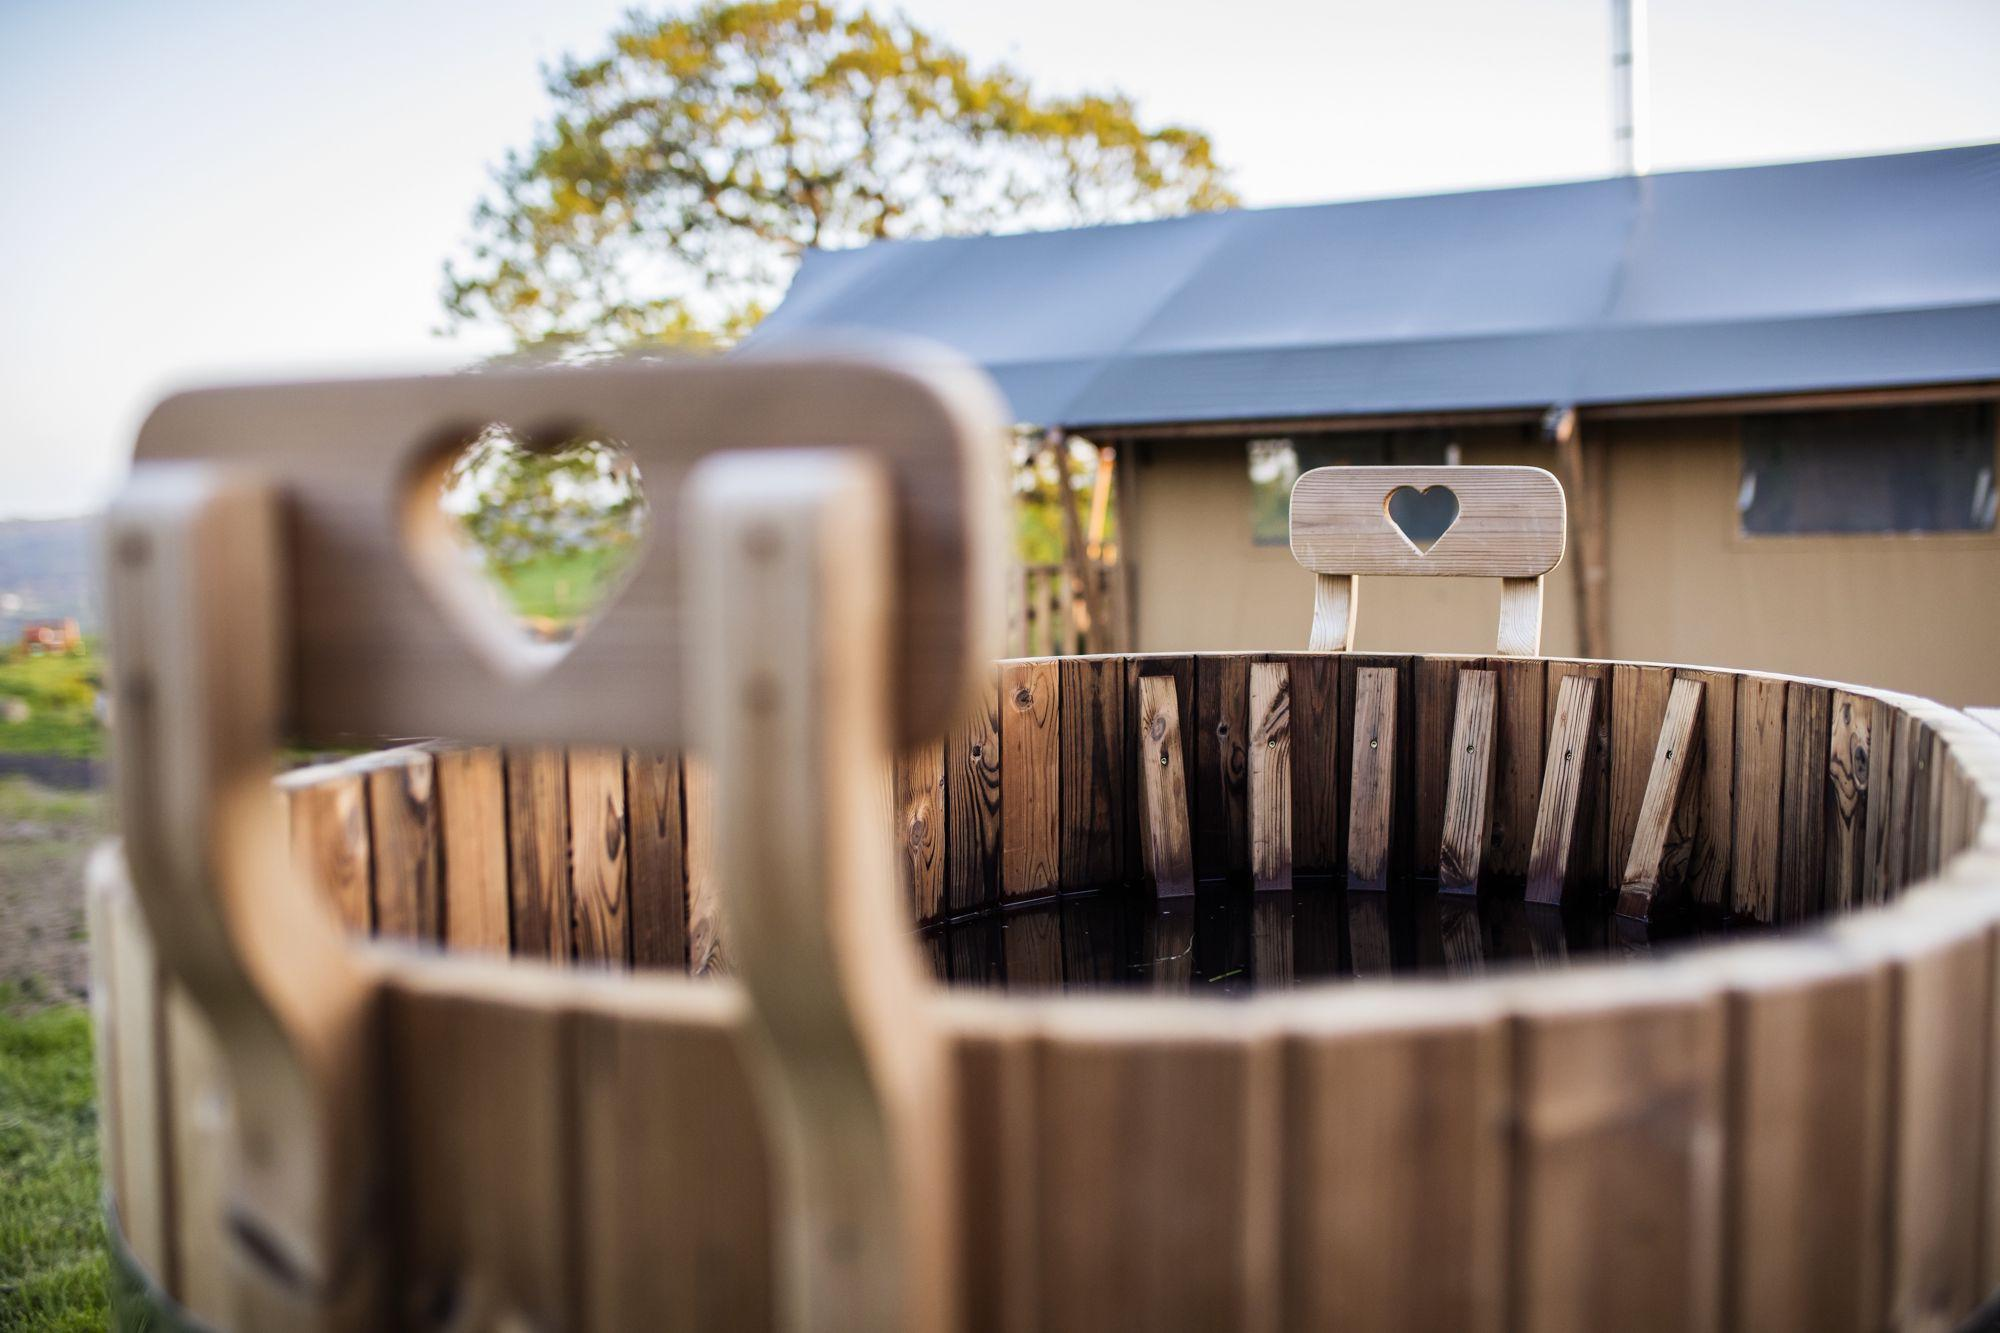 Hot Tub Glamping in South Wales | Glampsites with jacuzzis in South Wales